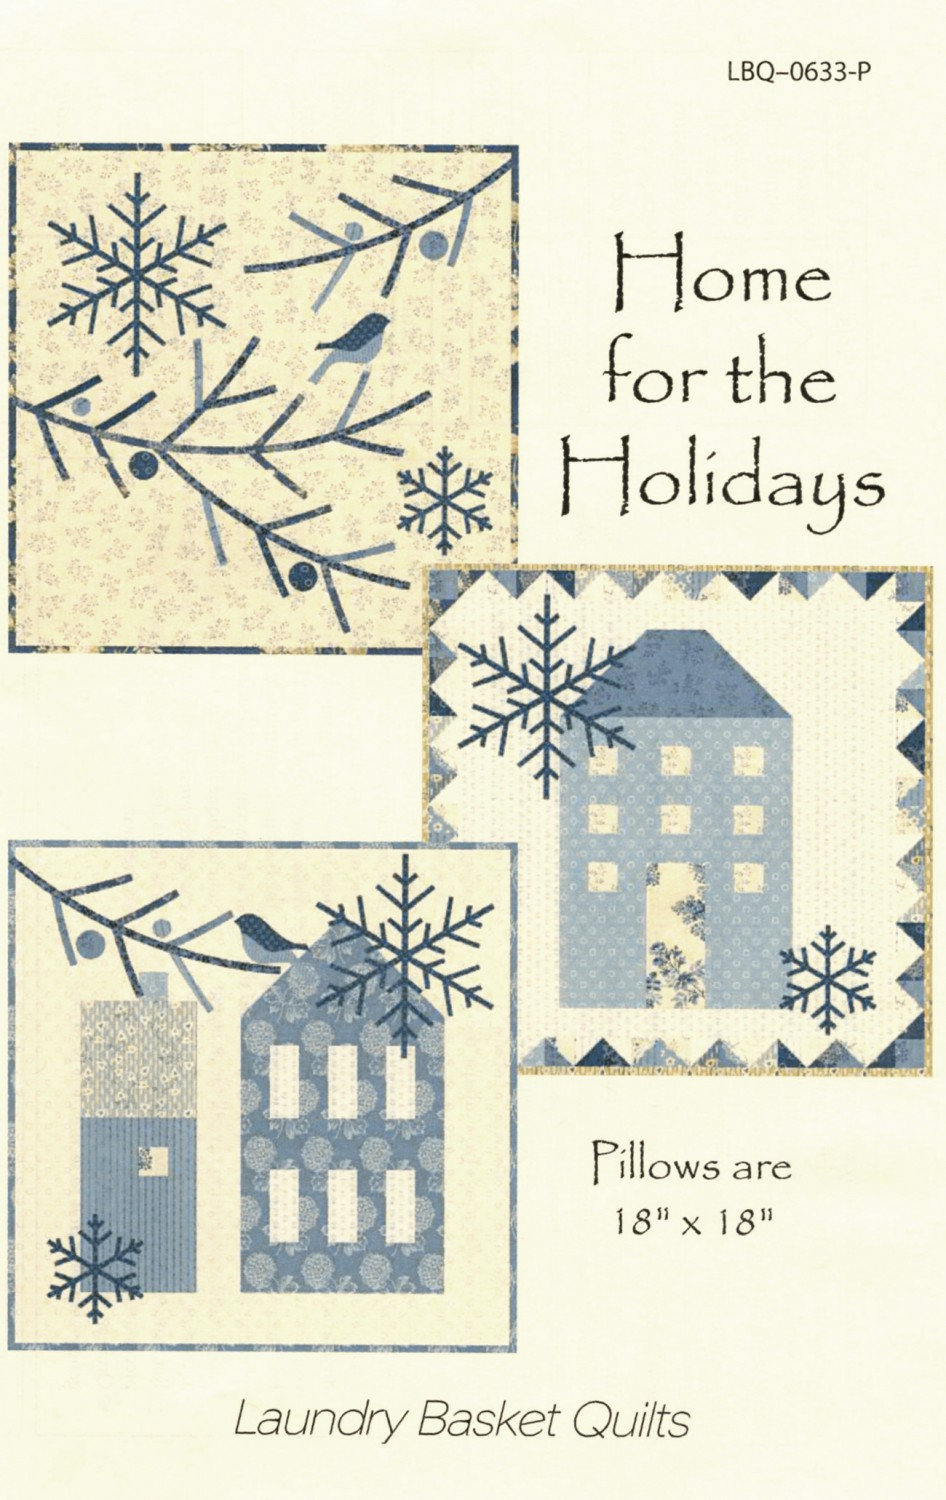 Home for the Holidays Quilted Pillow Patterns